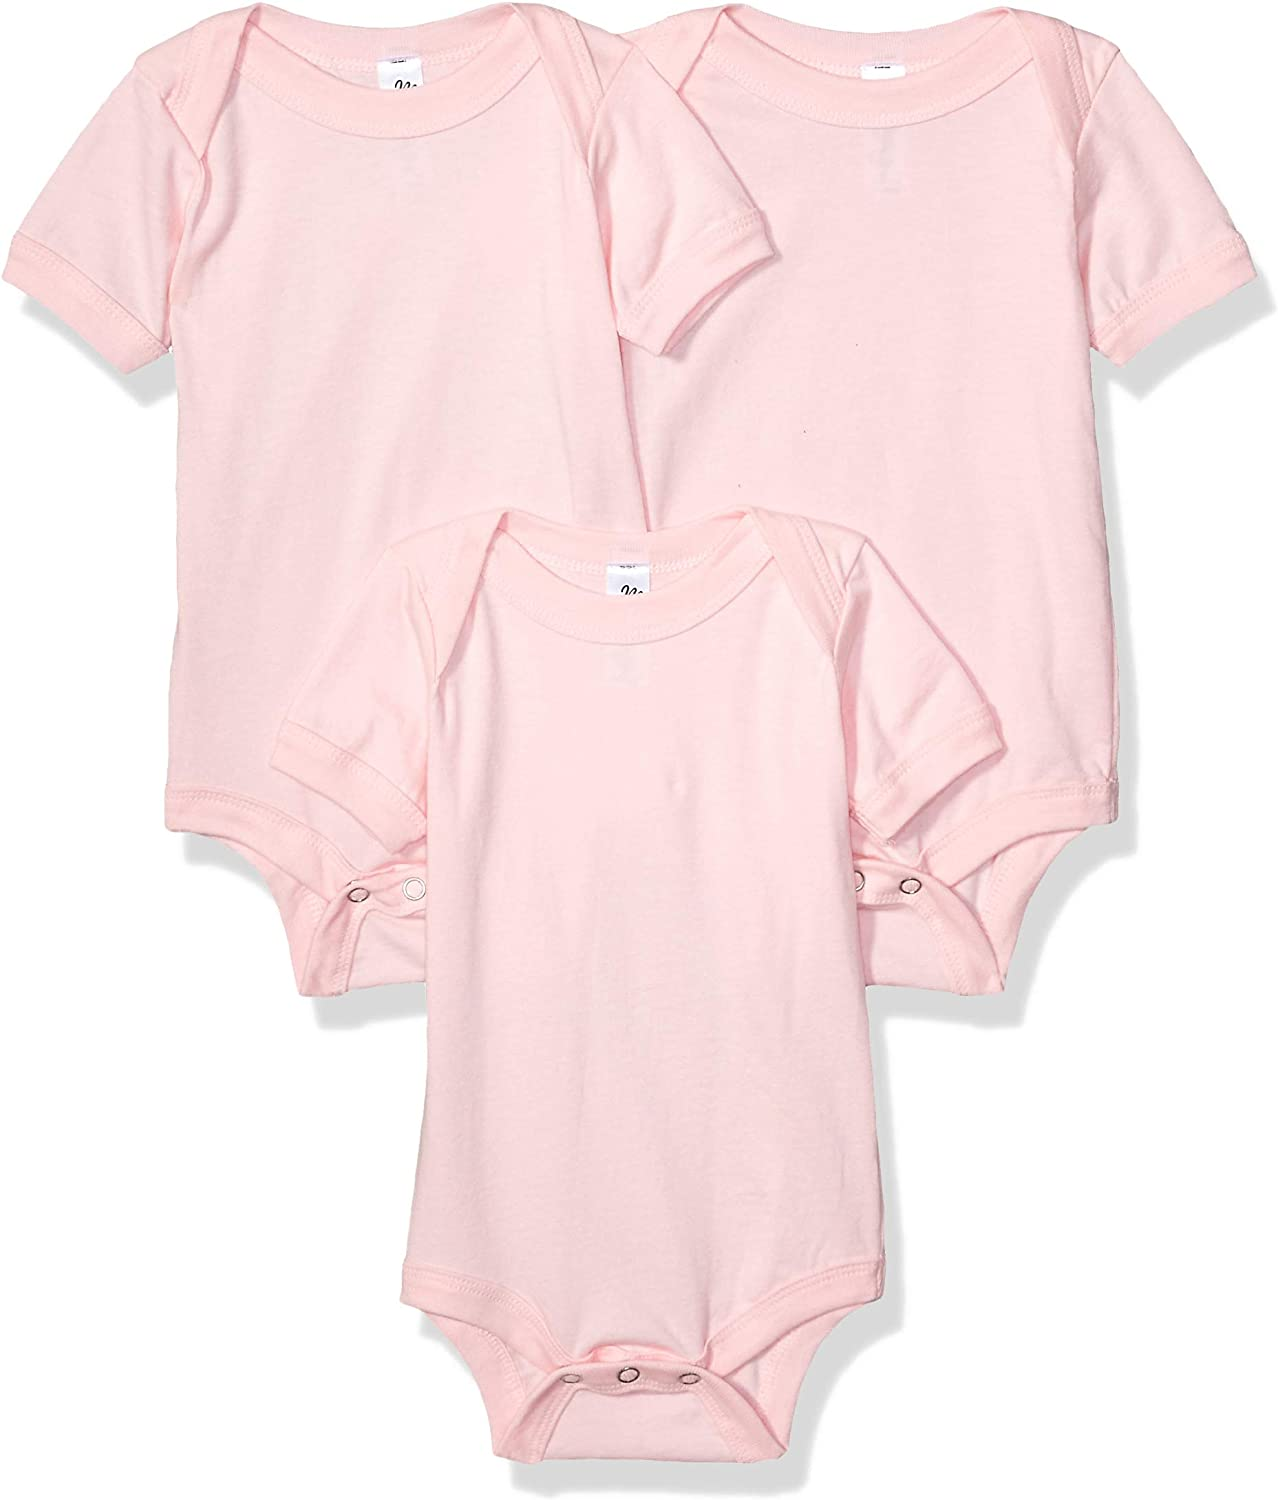 Marky G Apparel Baby Jersey Short-Sleeve One-Piece-3 Pack, Pink, 3-6 Months